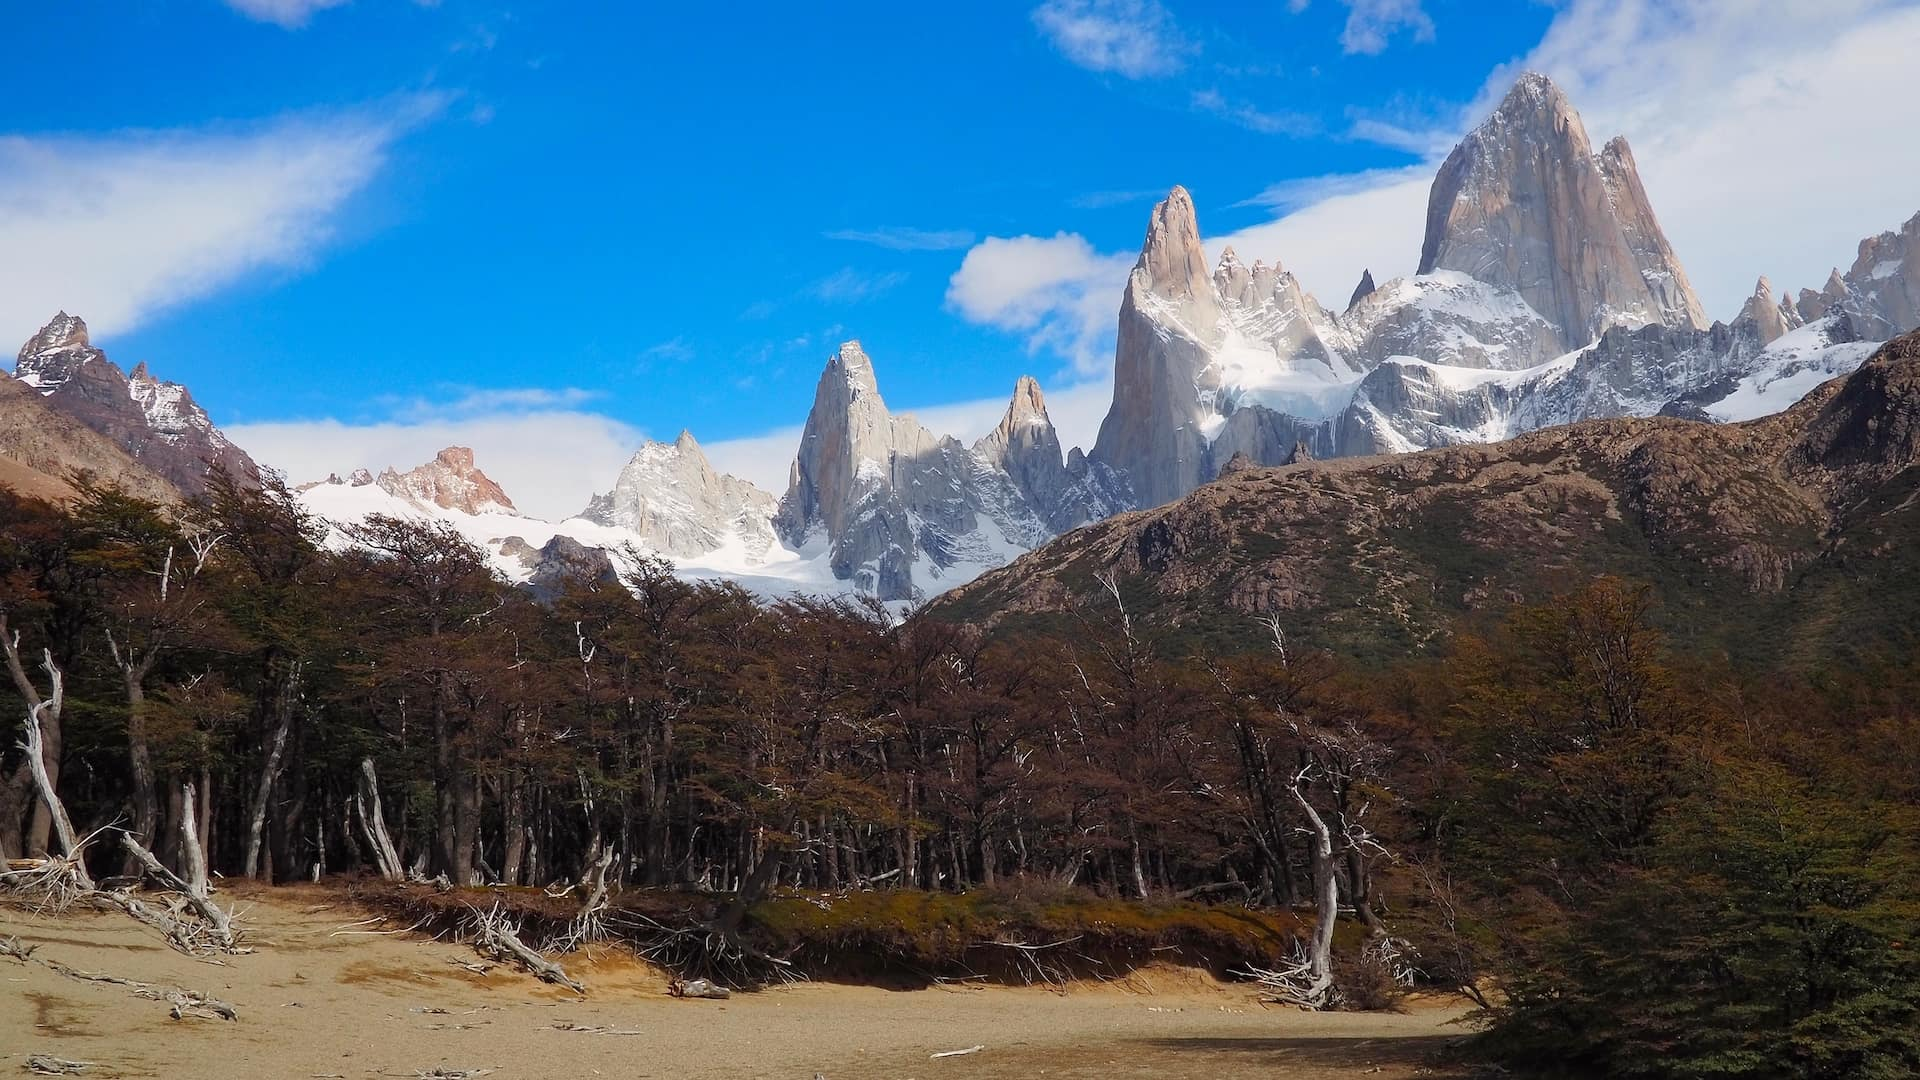 The approach to Campamento Poincenot with Mount Fitz Roy in the background